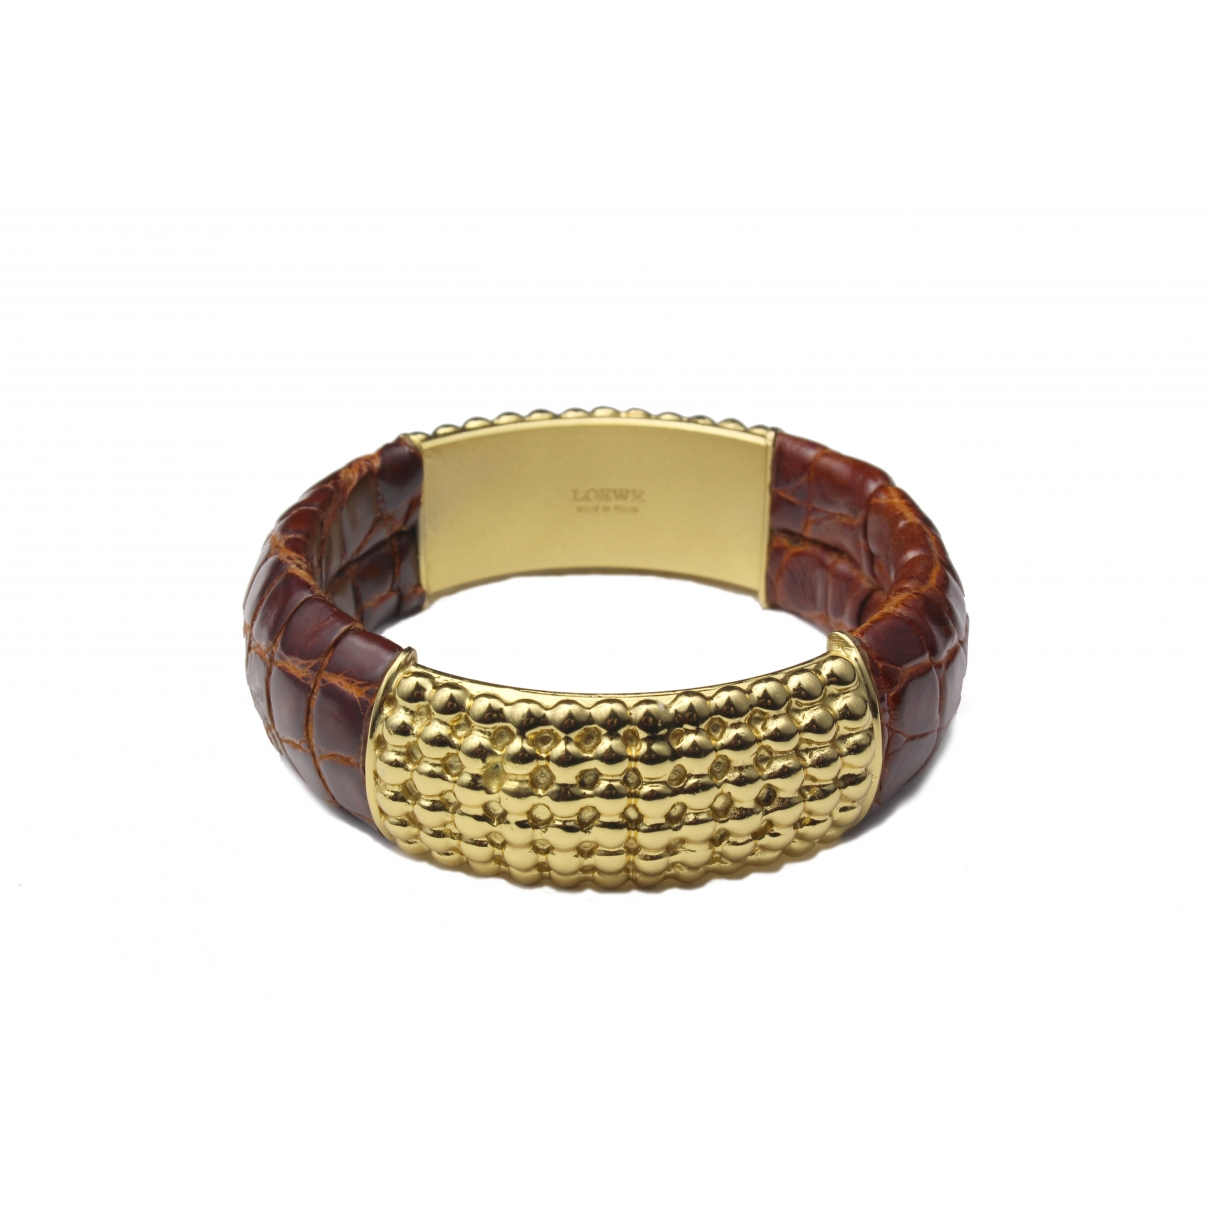 Loewe \N Crocodile bracelet for Women \N